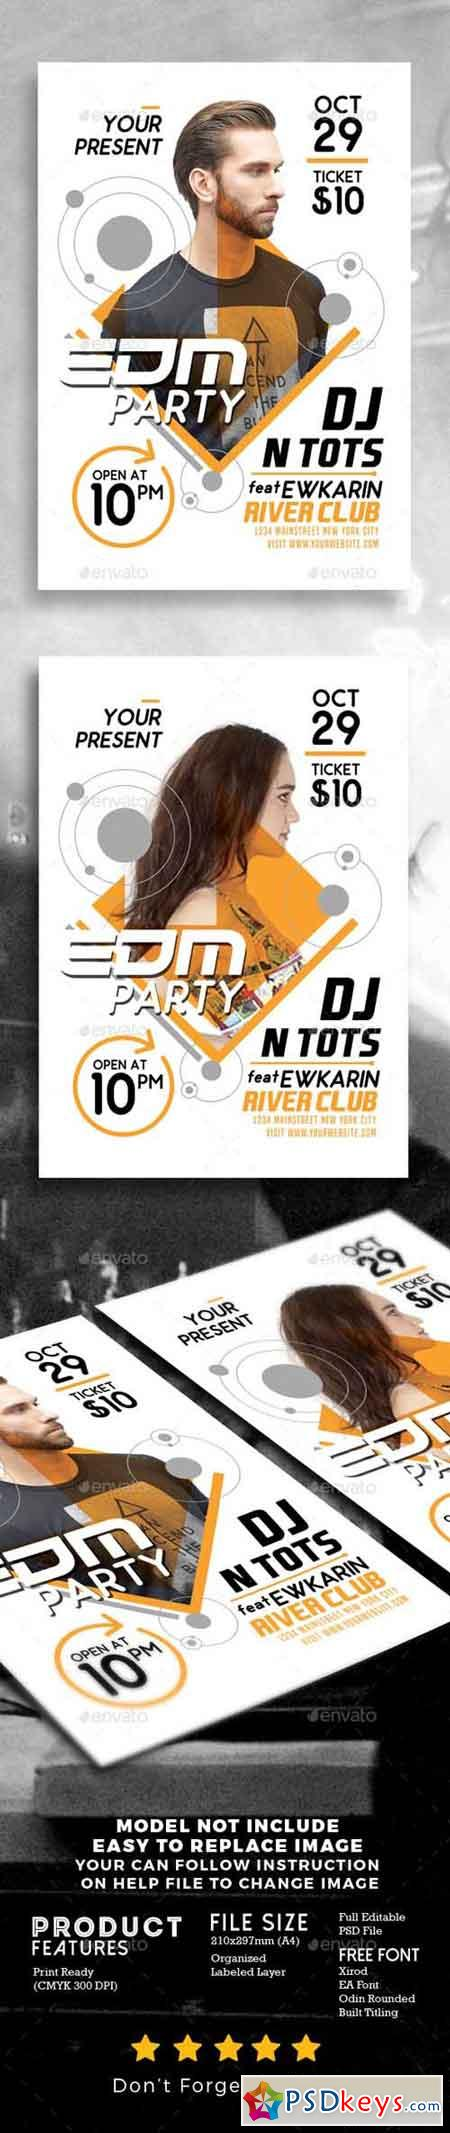 html edm template - edm party flyer template 19223204 free download